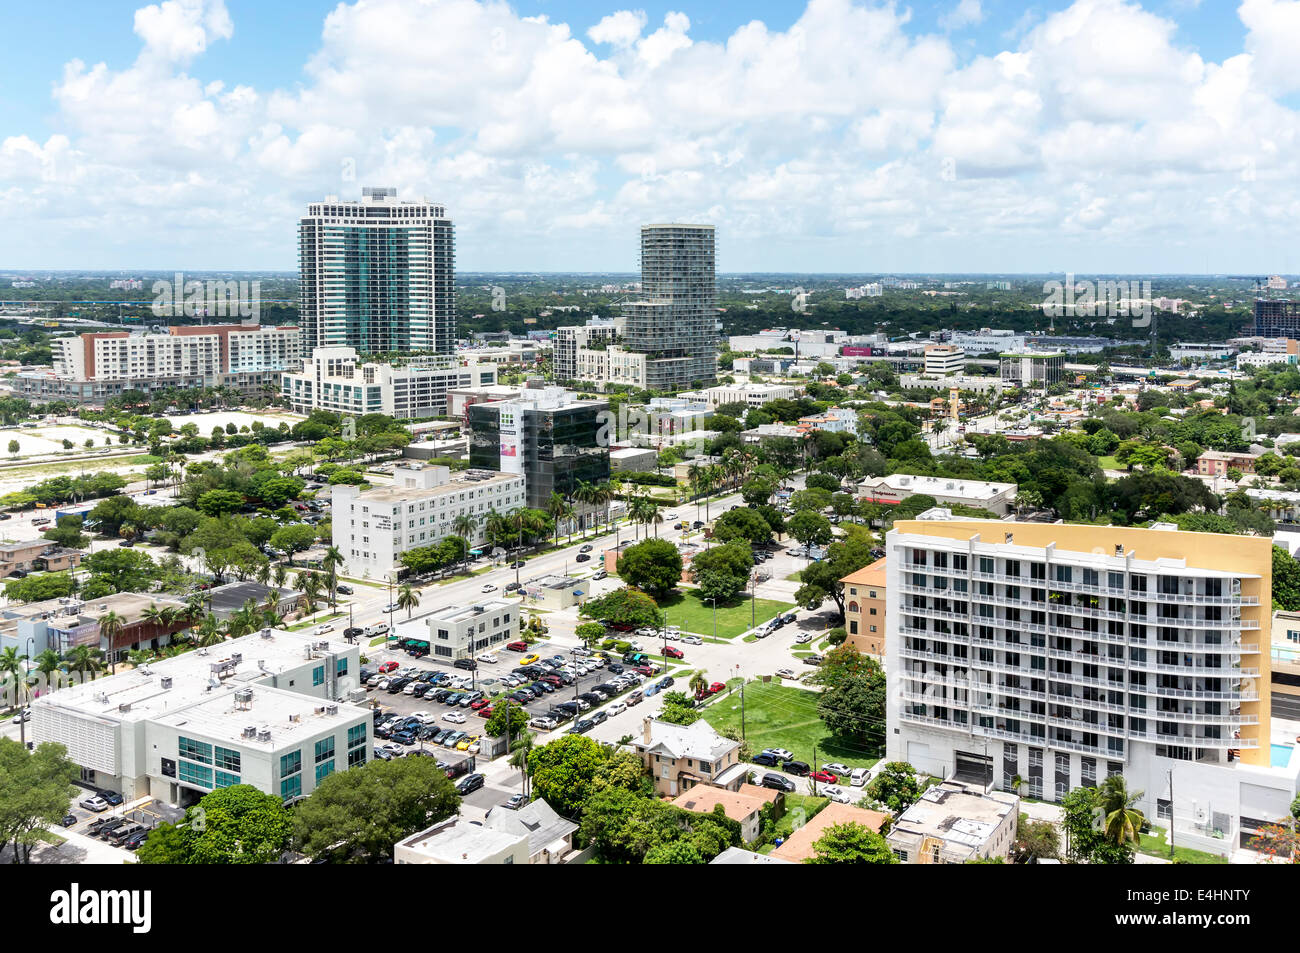 Aerial view of Downtown Miami viewed from an upper floor of a new condominium high-rise tower in Midtown Miami, Stock Photo